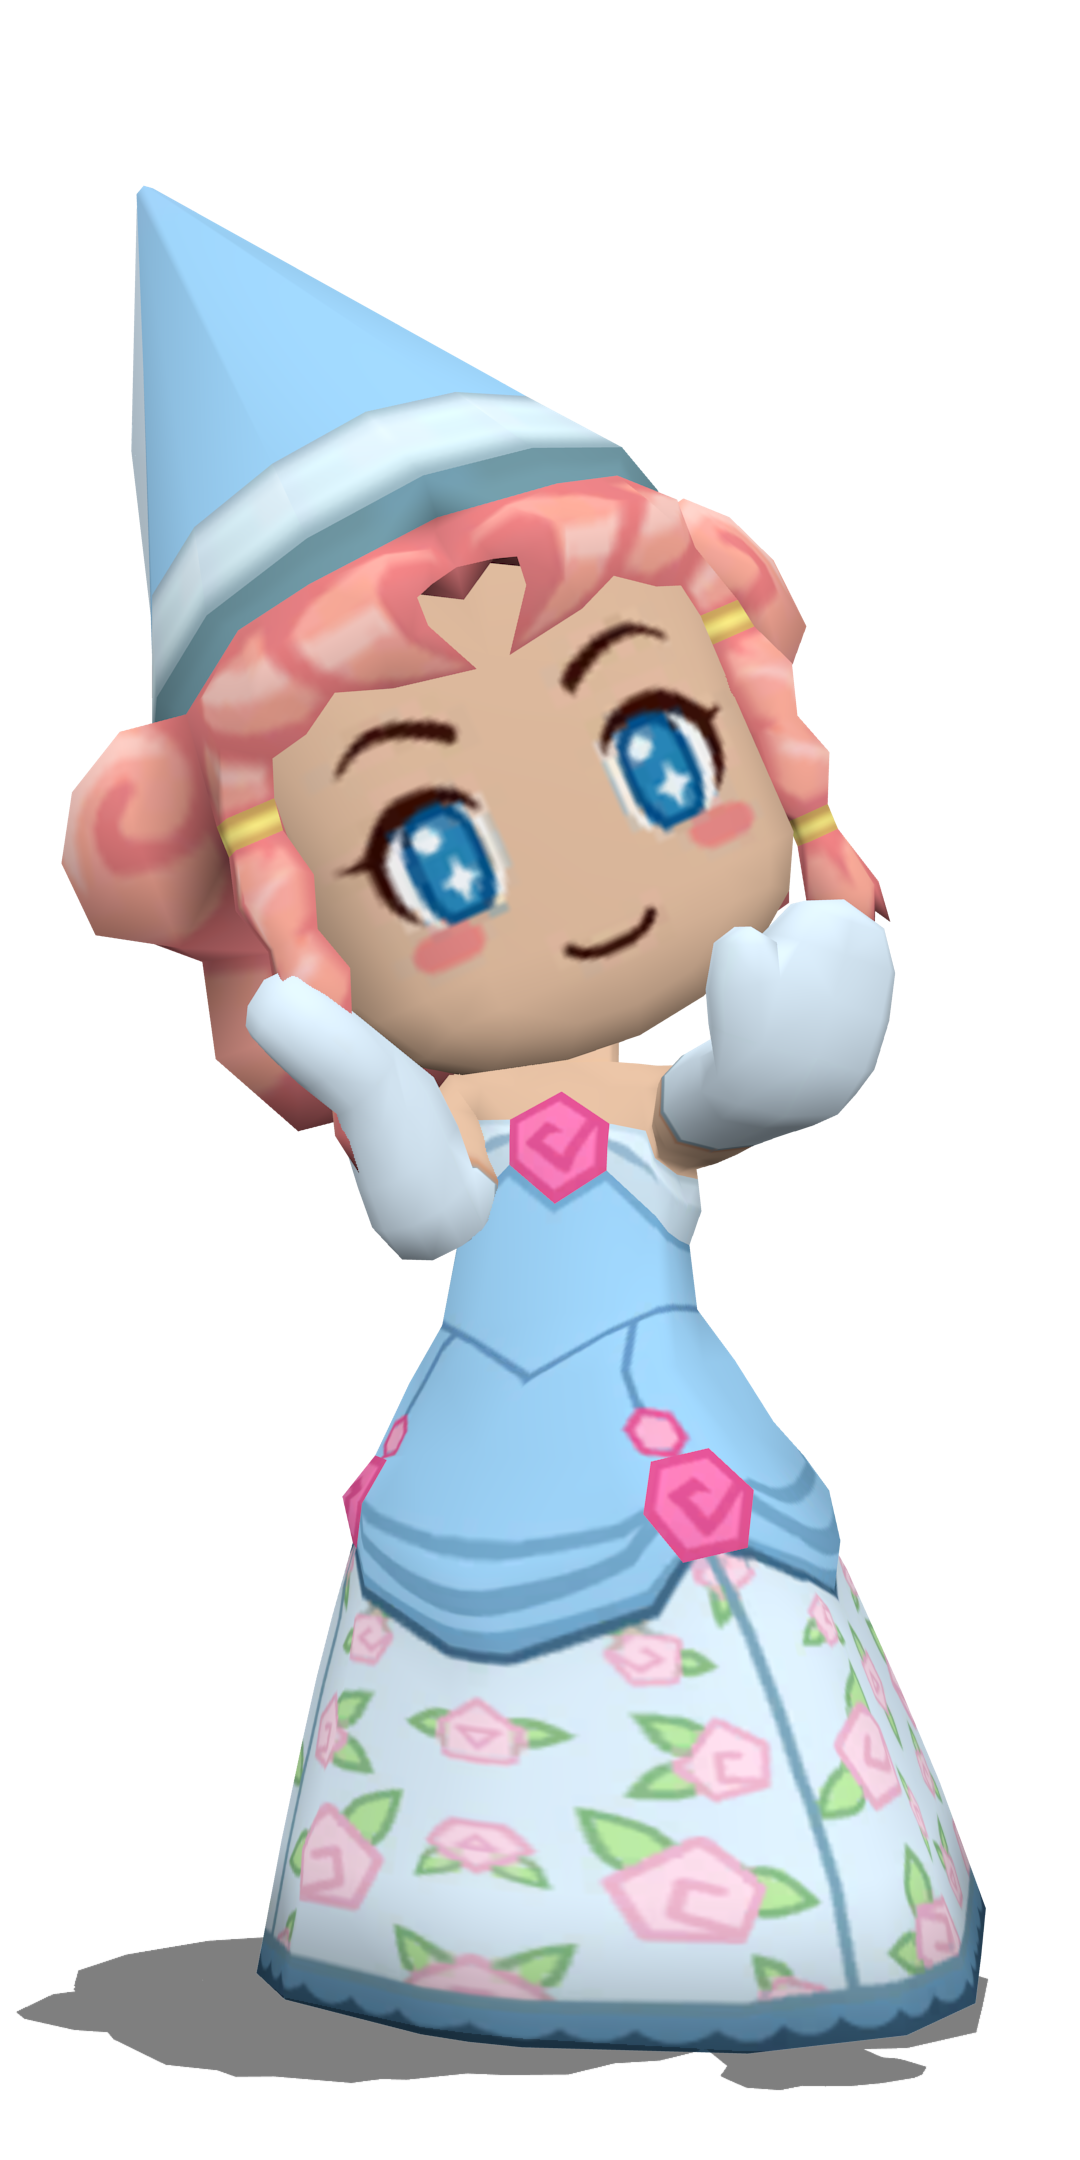 Princess mysims wiki fandom. Butter character png svg black and white download